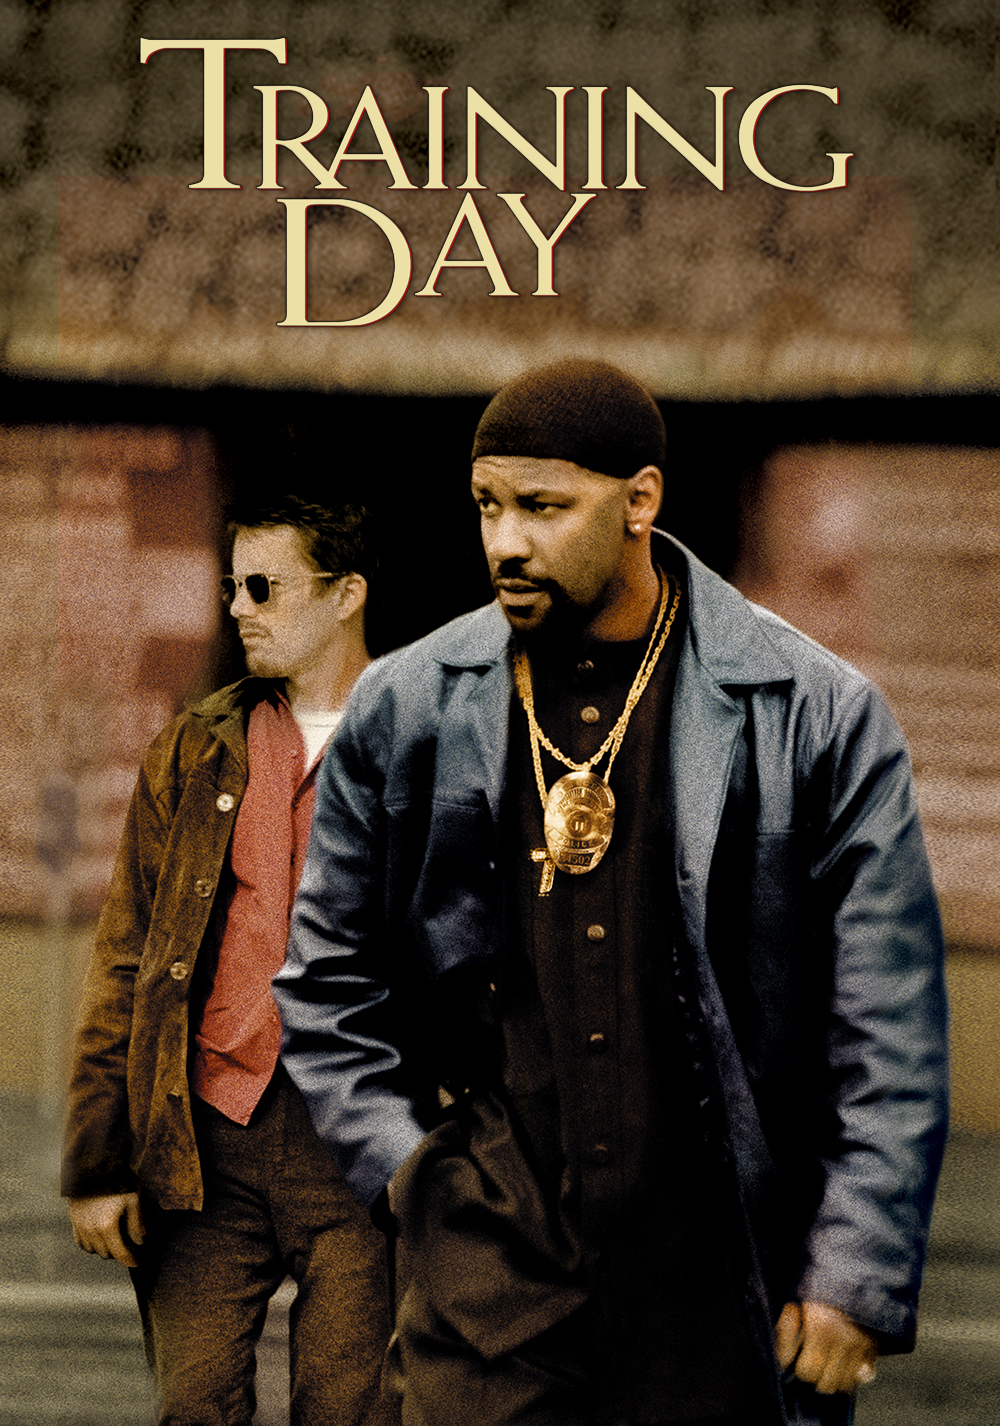 TRAINING DAY (2001) TAMIL DUBBED HD